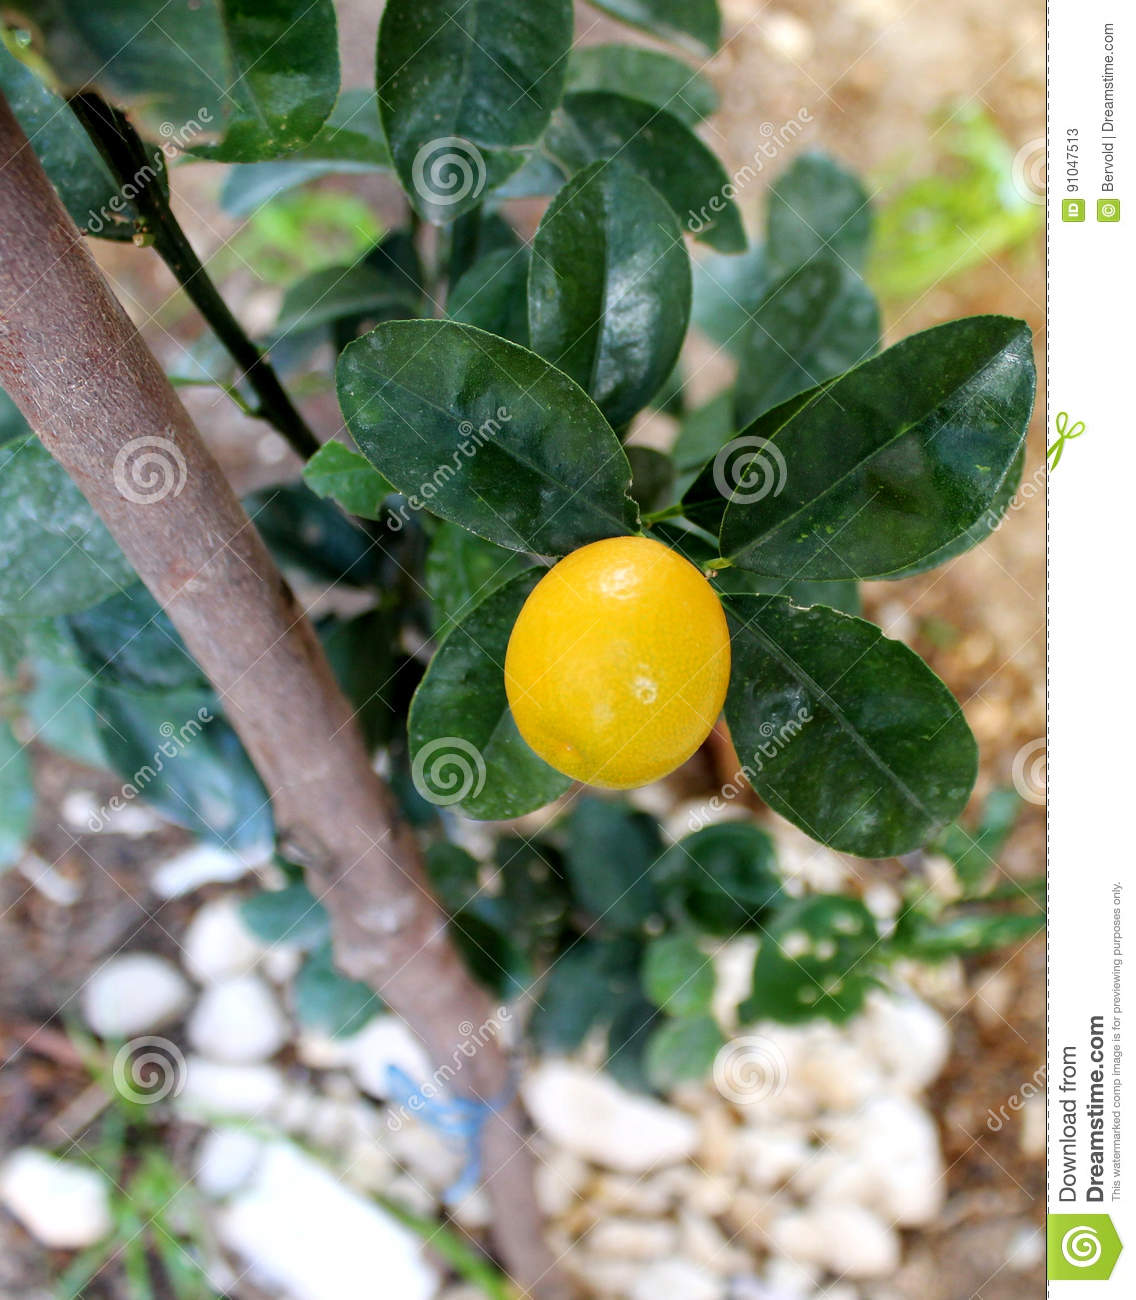 kumquat fruit ripe on a tree stock image image of citrus sweet